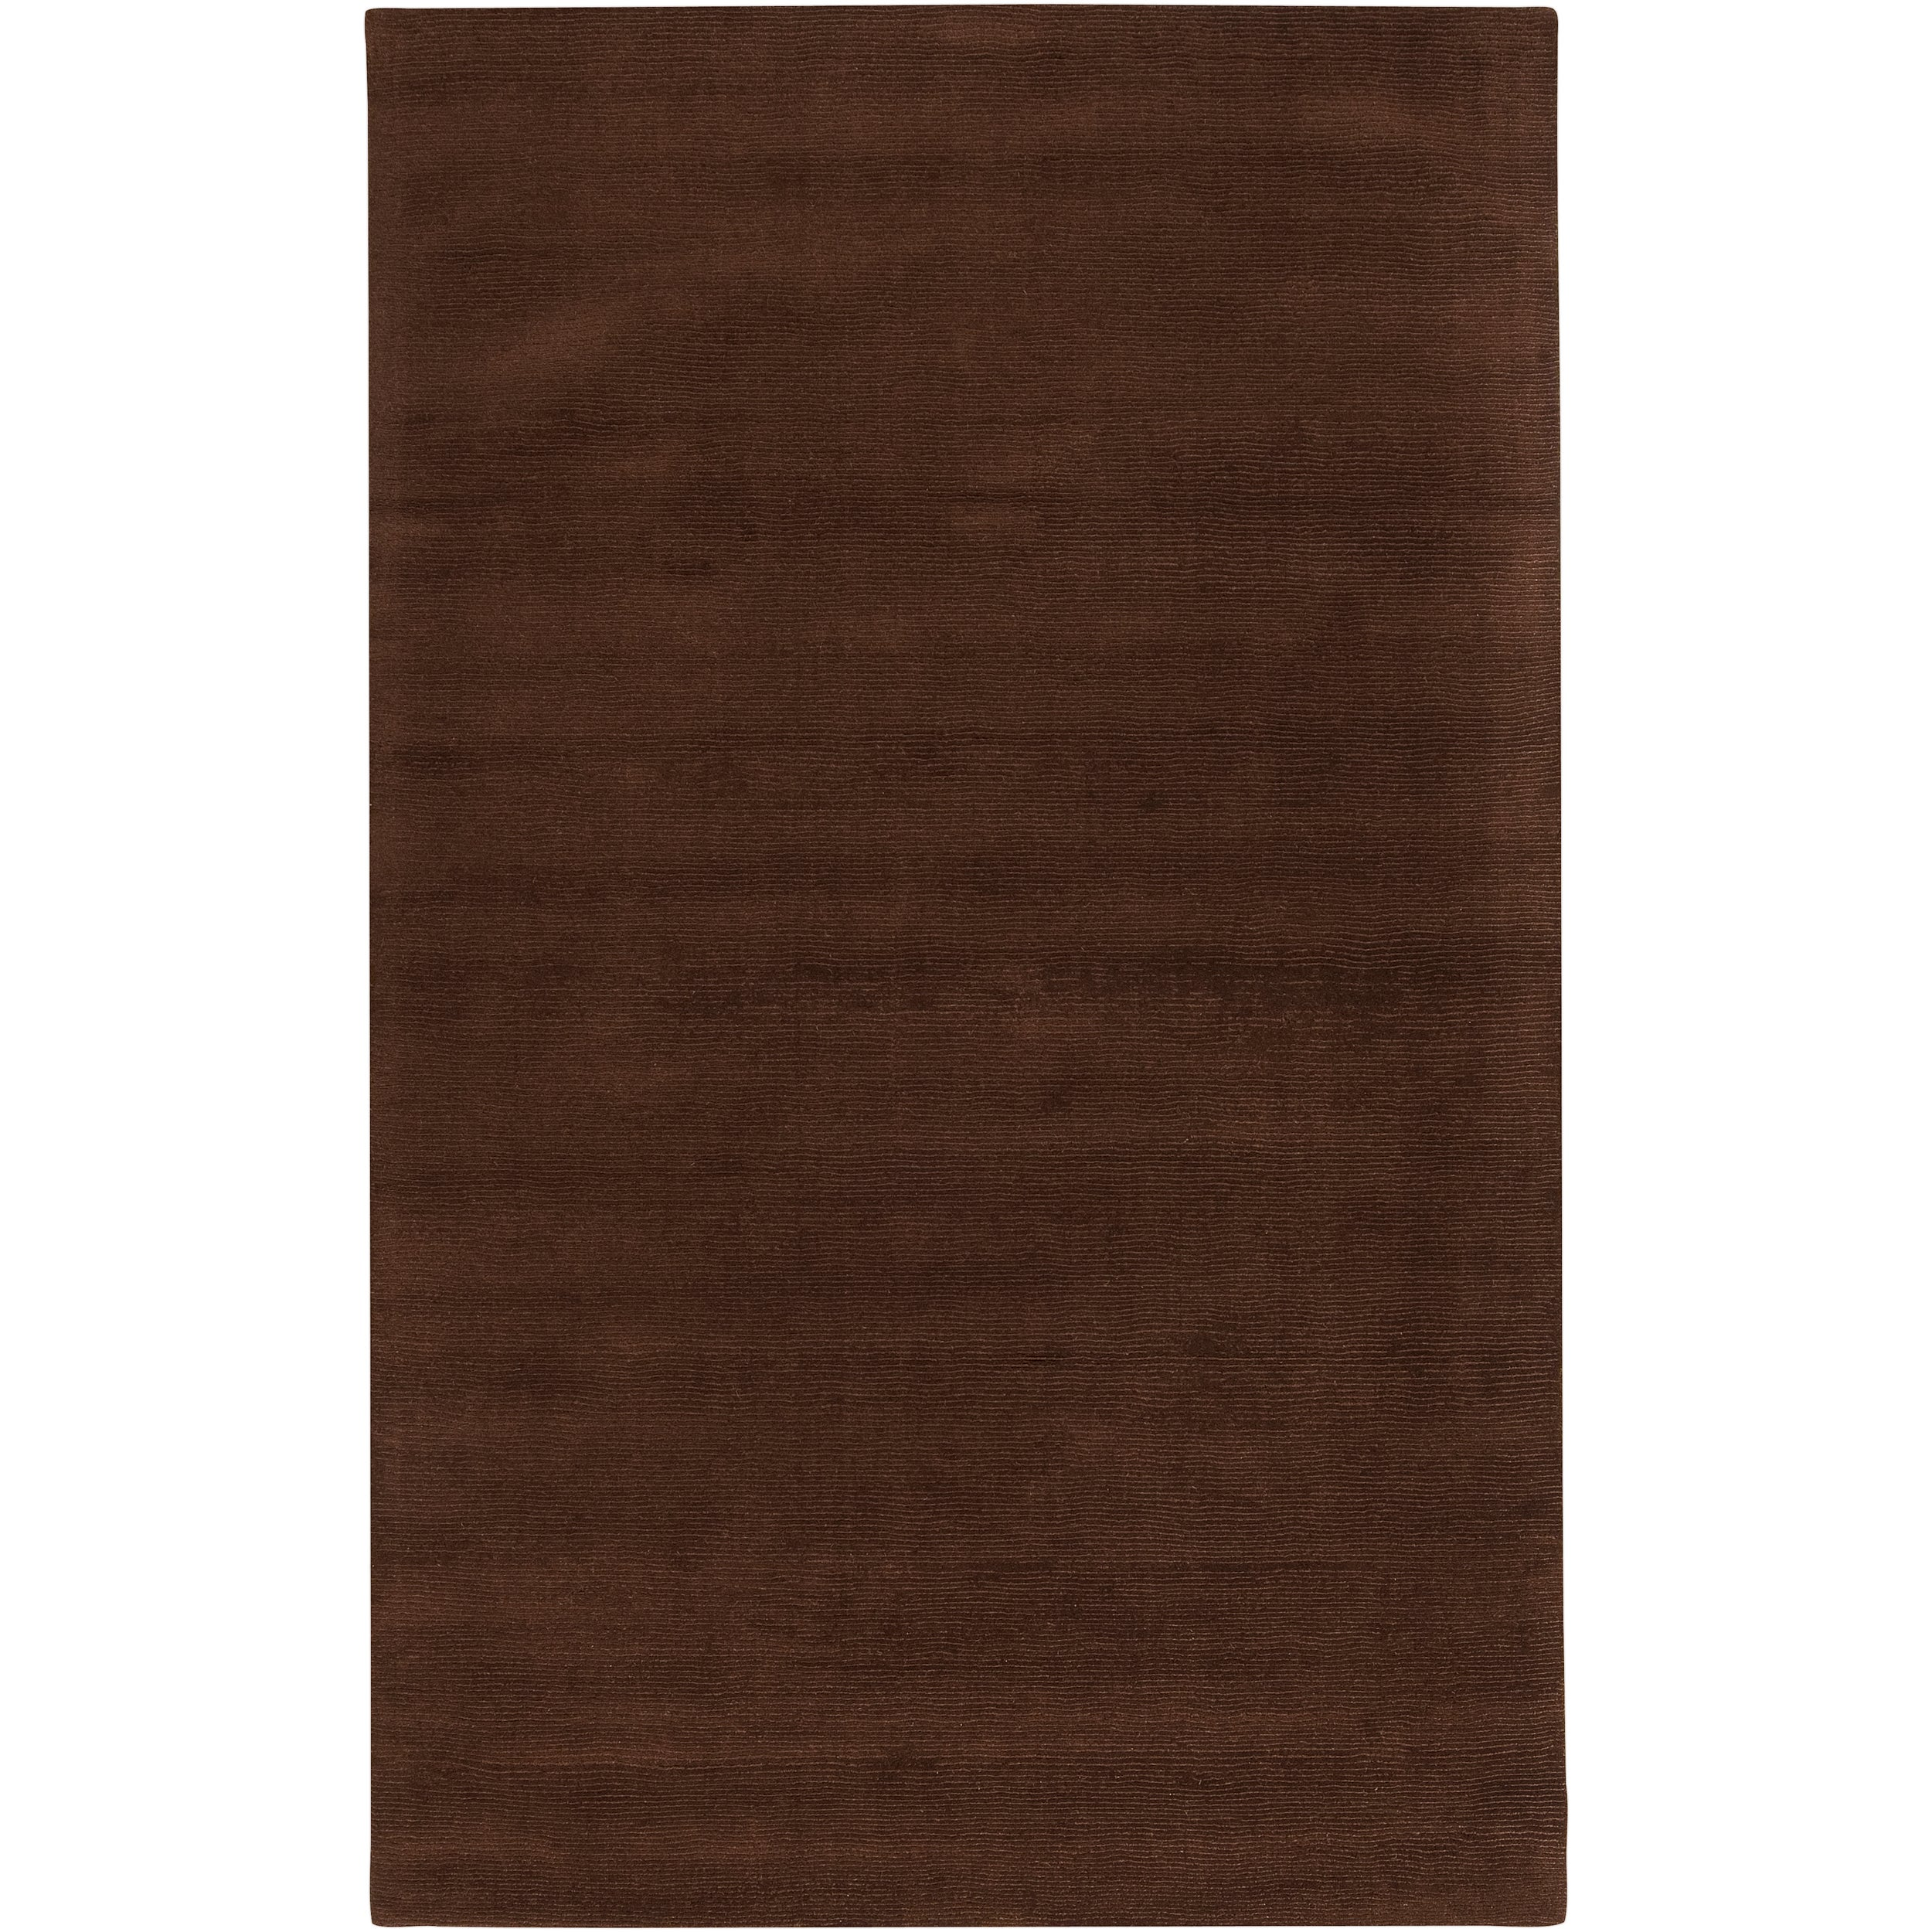 Hand-crafted Brown Solid Casual Nivia Wool Rug (6' x 9')